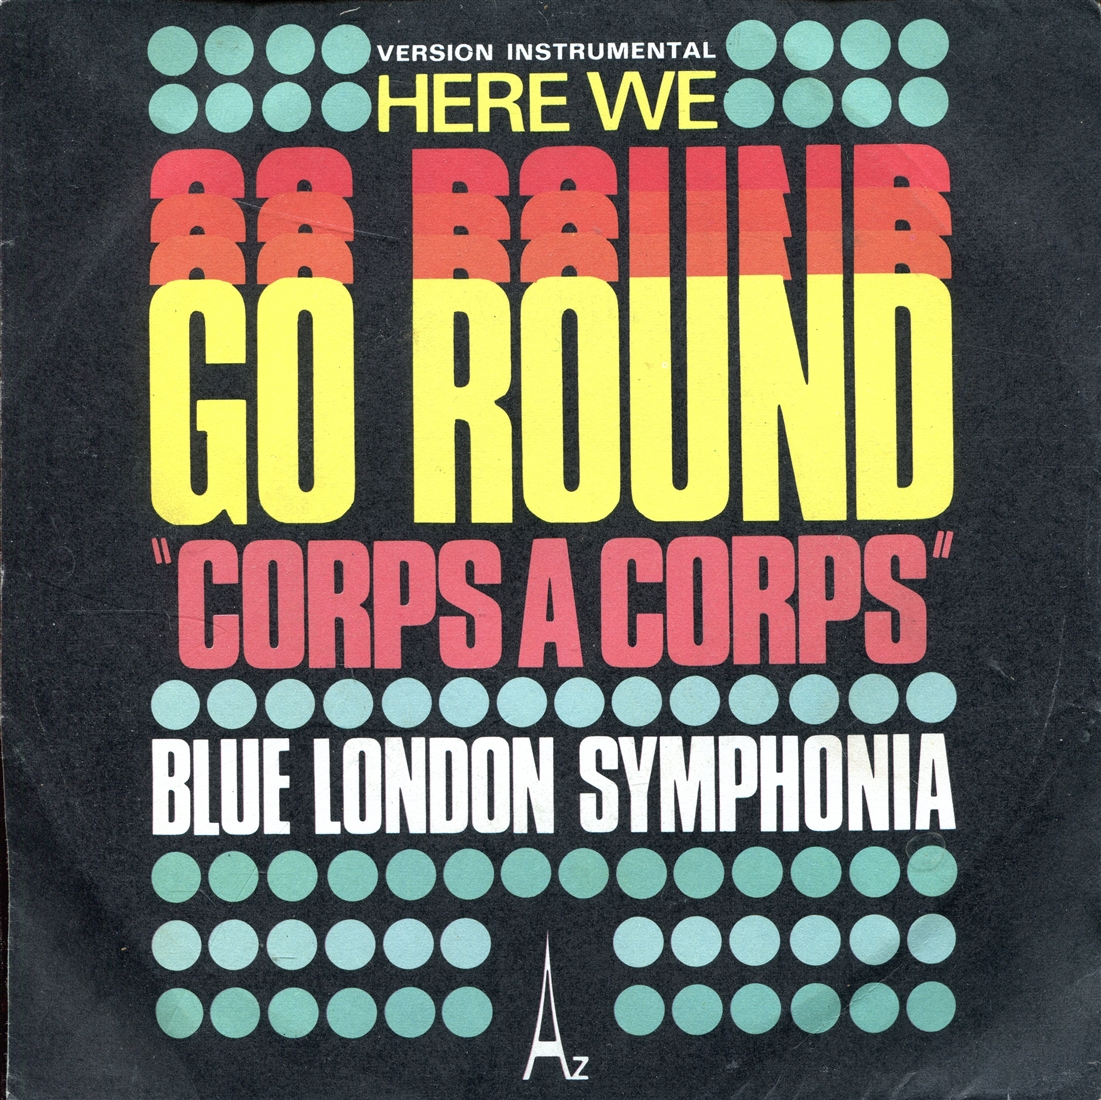 BLUE LONDON SYMPHONIA - Corps A Corps (Here We Go Round) - 7inch x 1